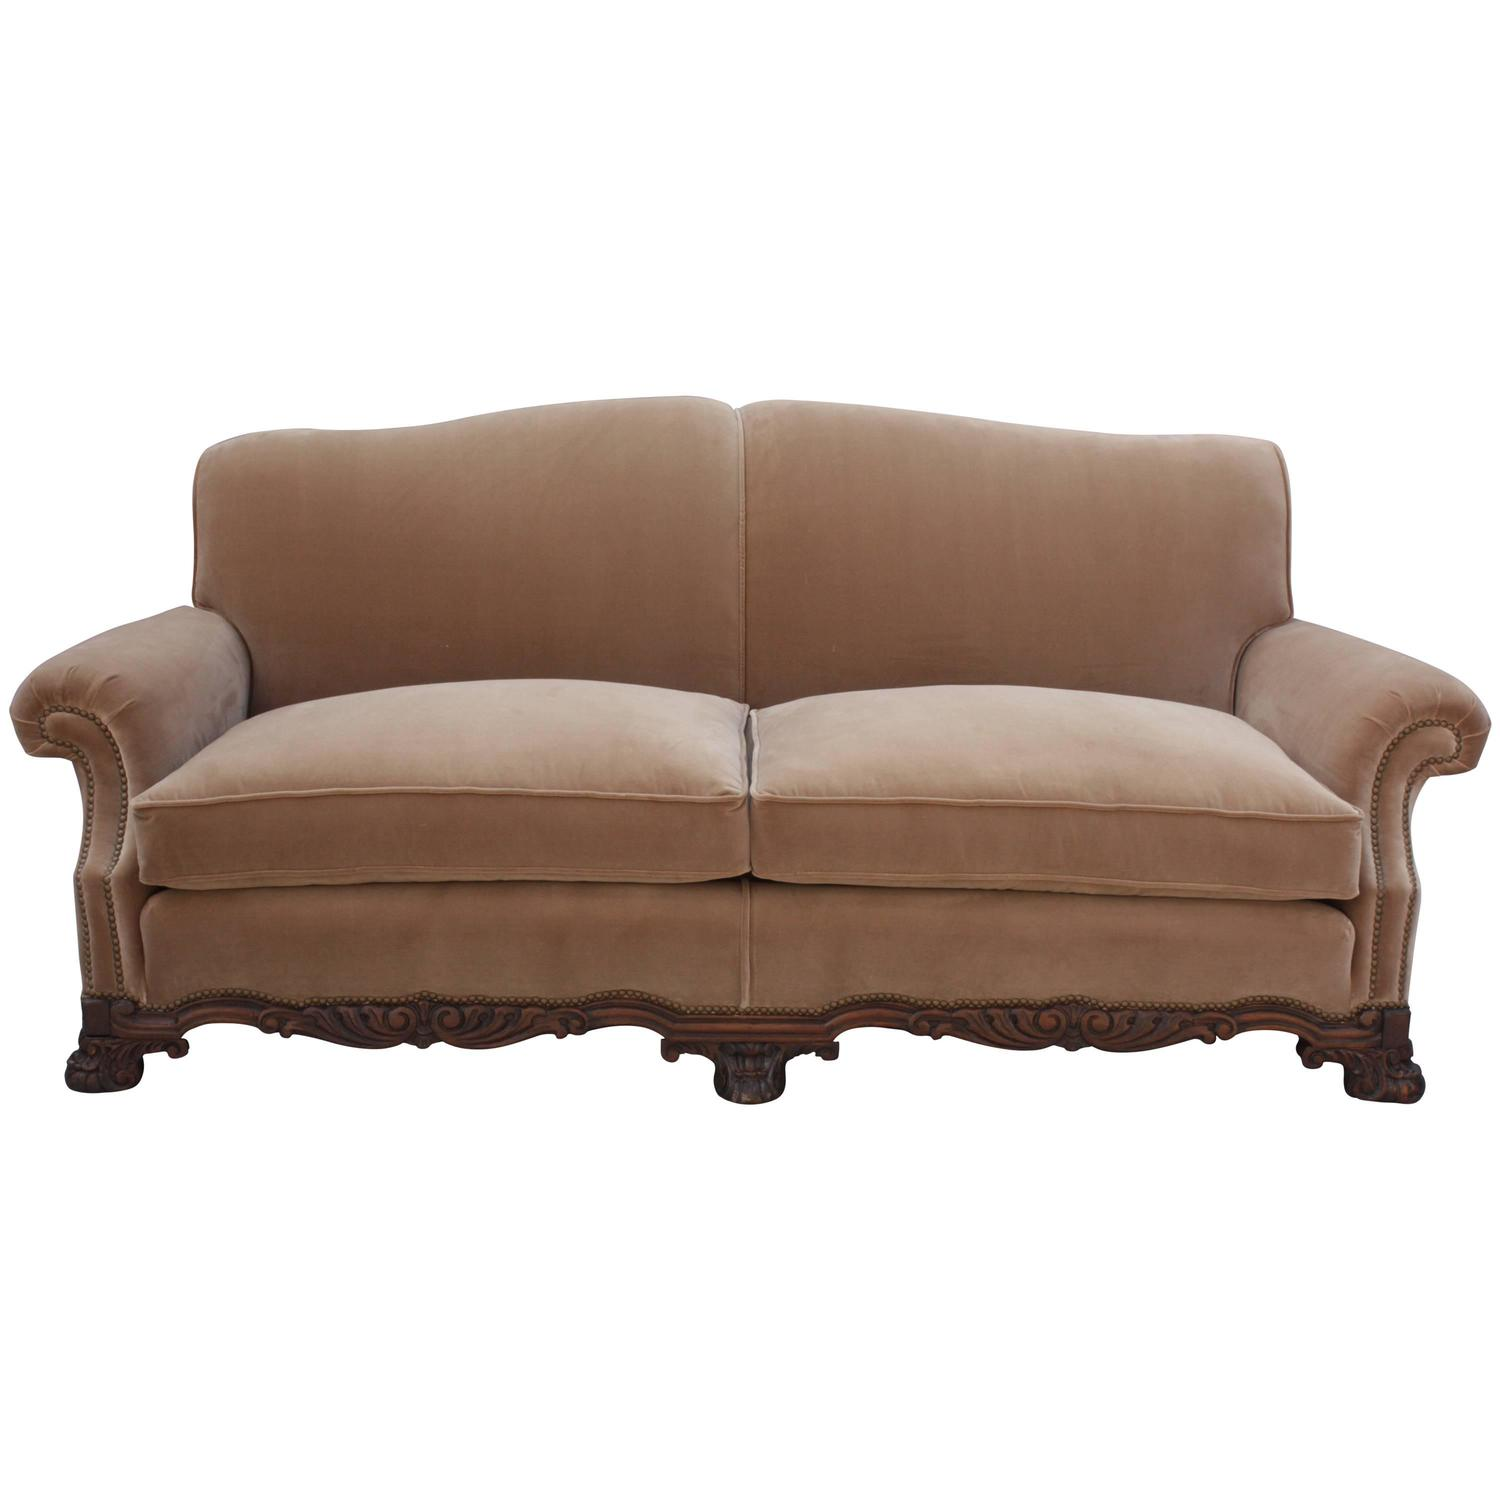 1920 spanish revival upholstered sofa for sale at 1stdibs for Furniture in spanish